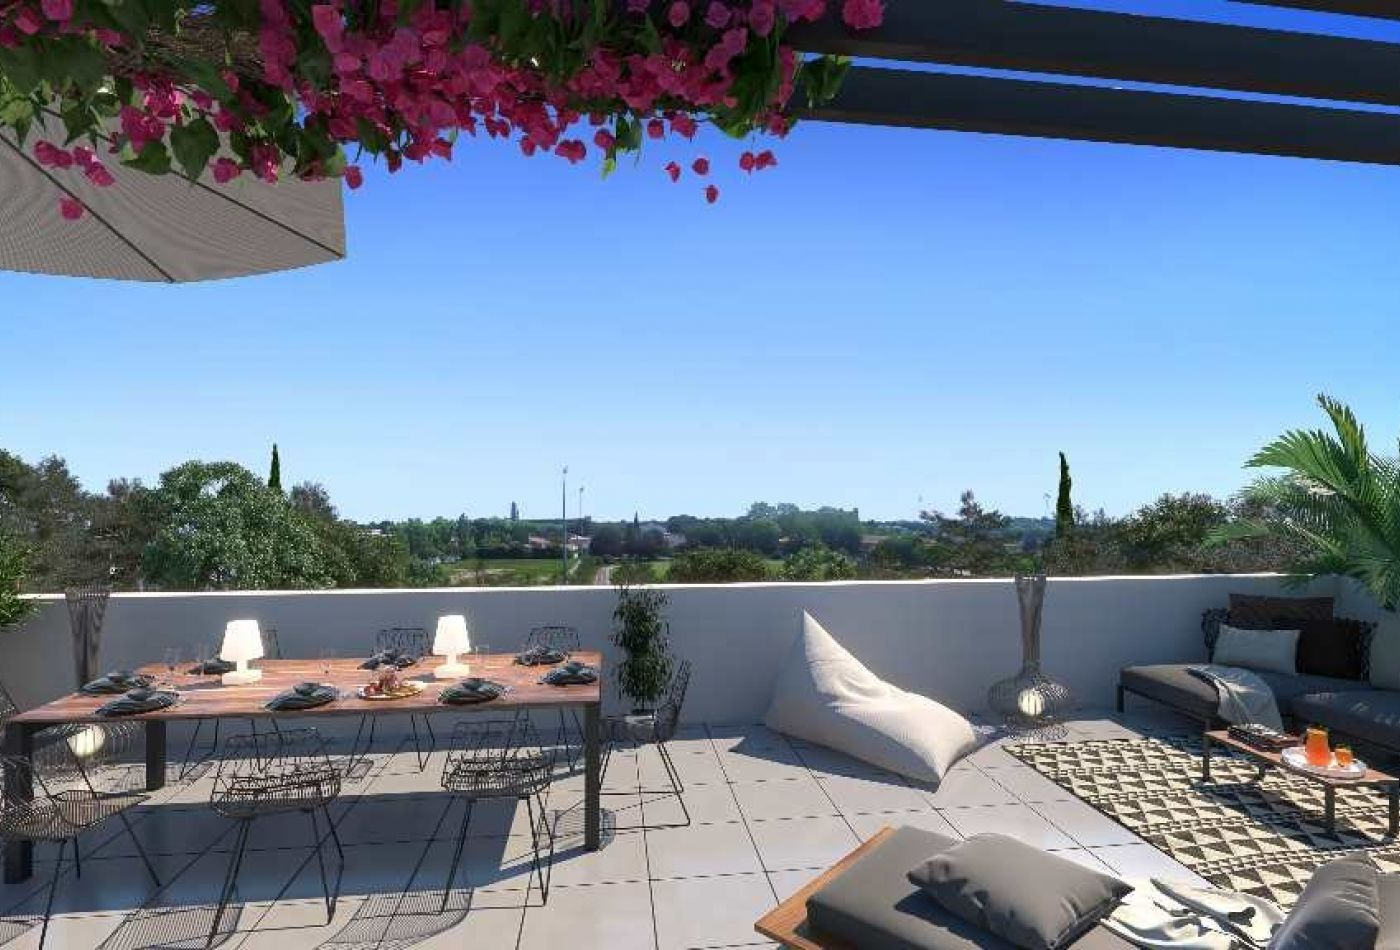 Appartement en vente montpellier r f340135855 agence for Appartement agence